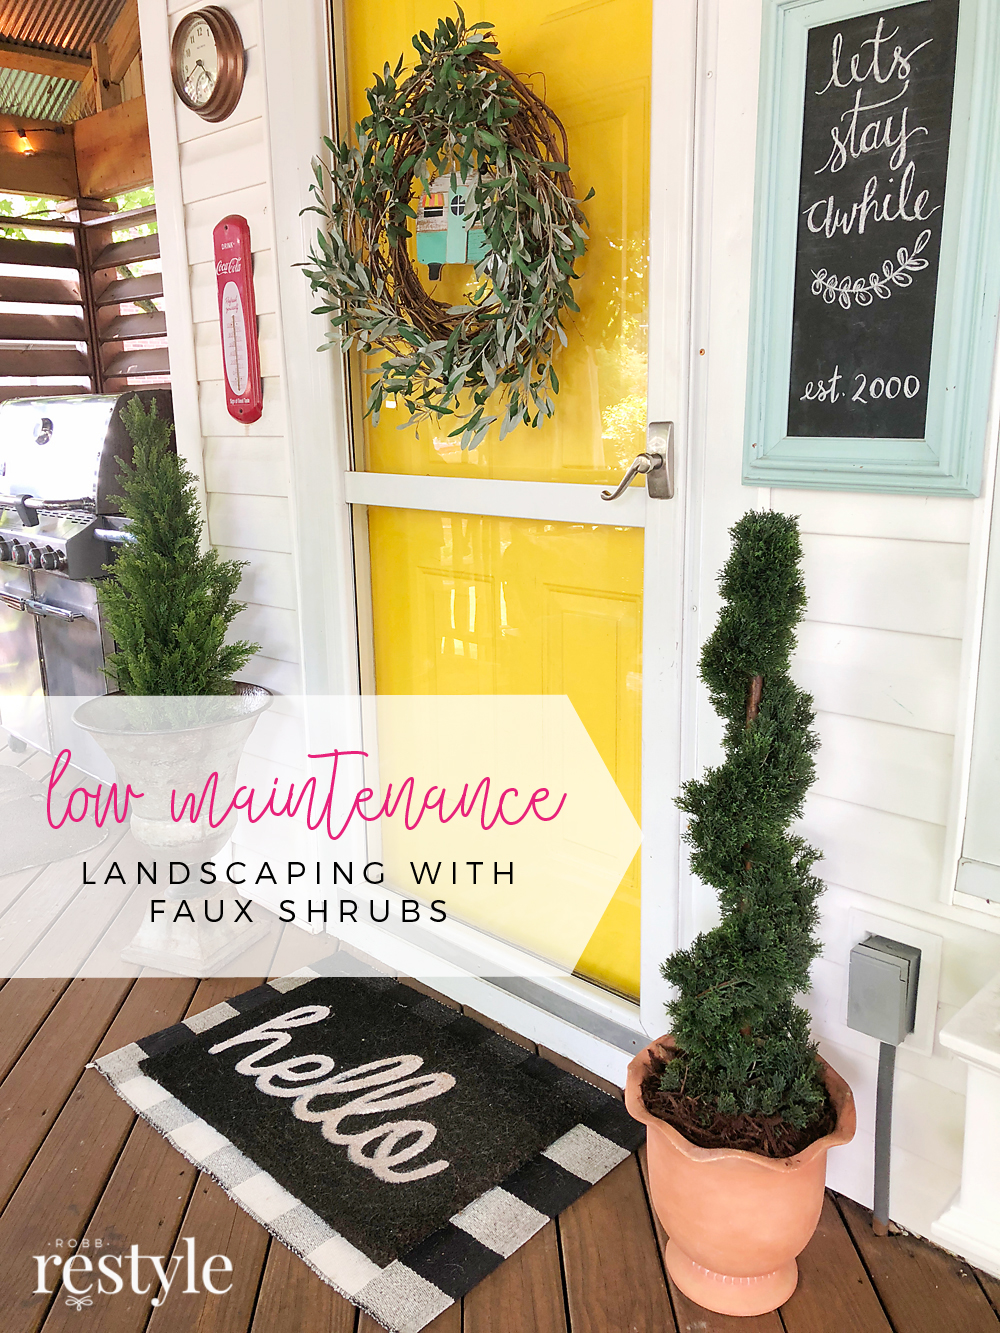 Low Maintenance Landscaping with Faux Plants